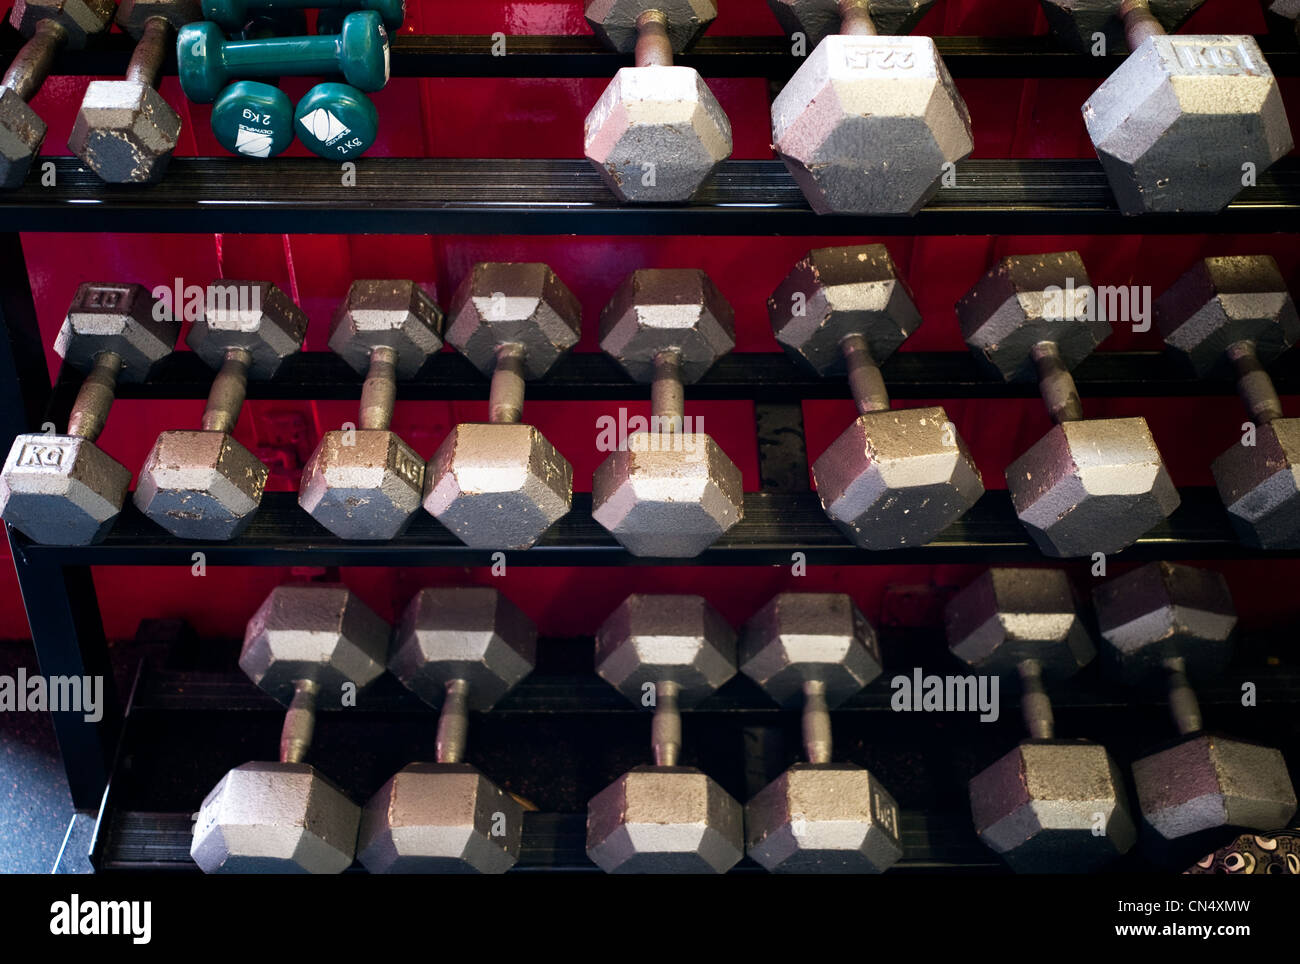 Dunbell weights ordered on shelves in a gym - Stock Image